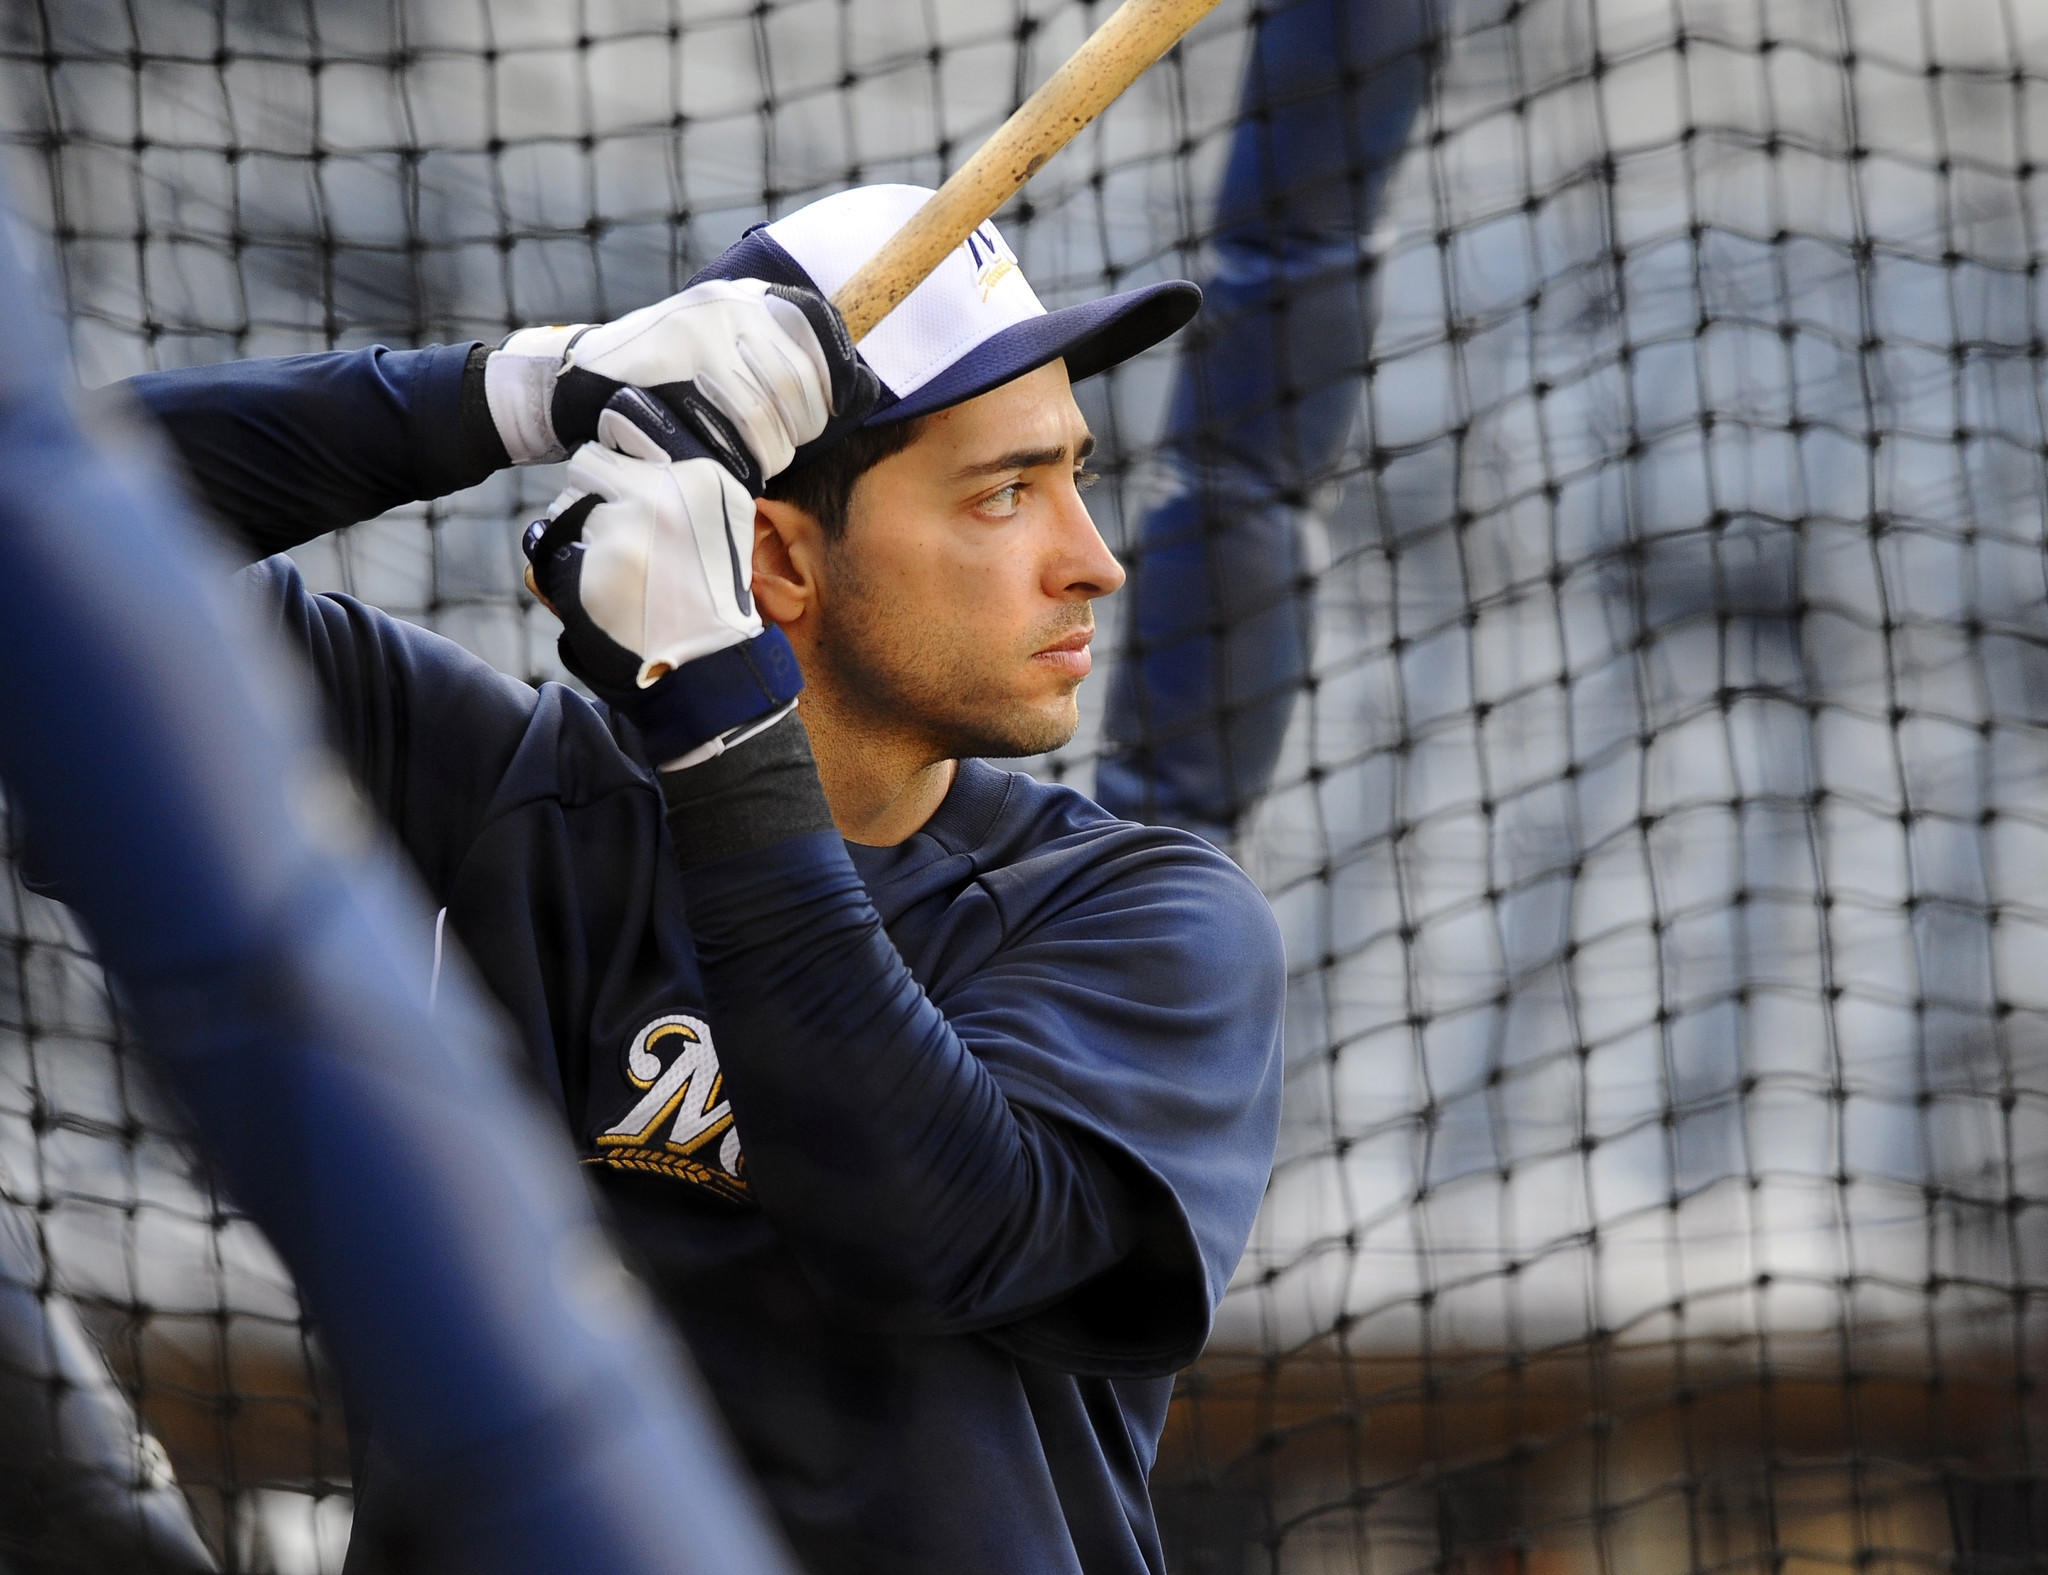 The Brewers' Ryan Braun during batting practice prior a game in 2013.